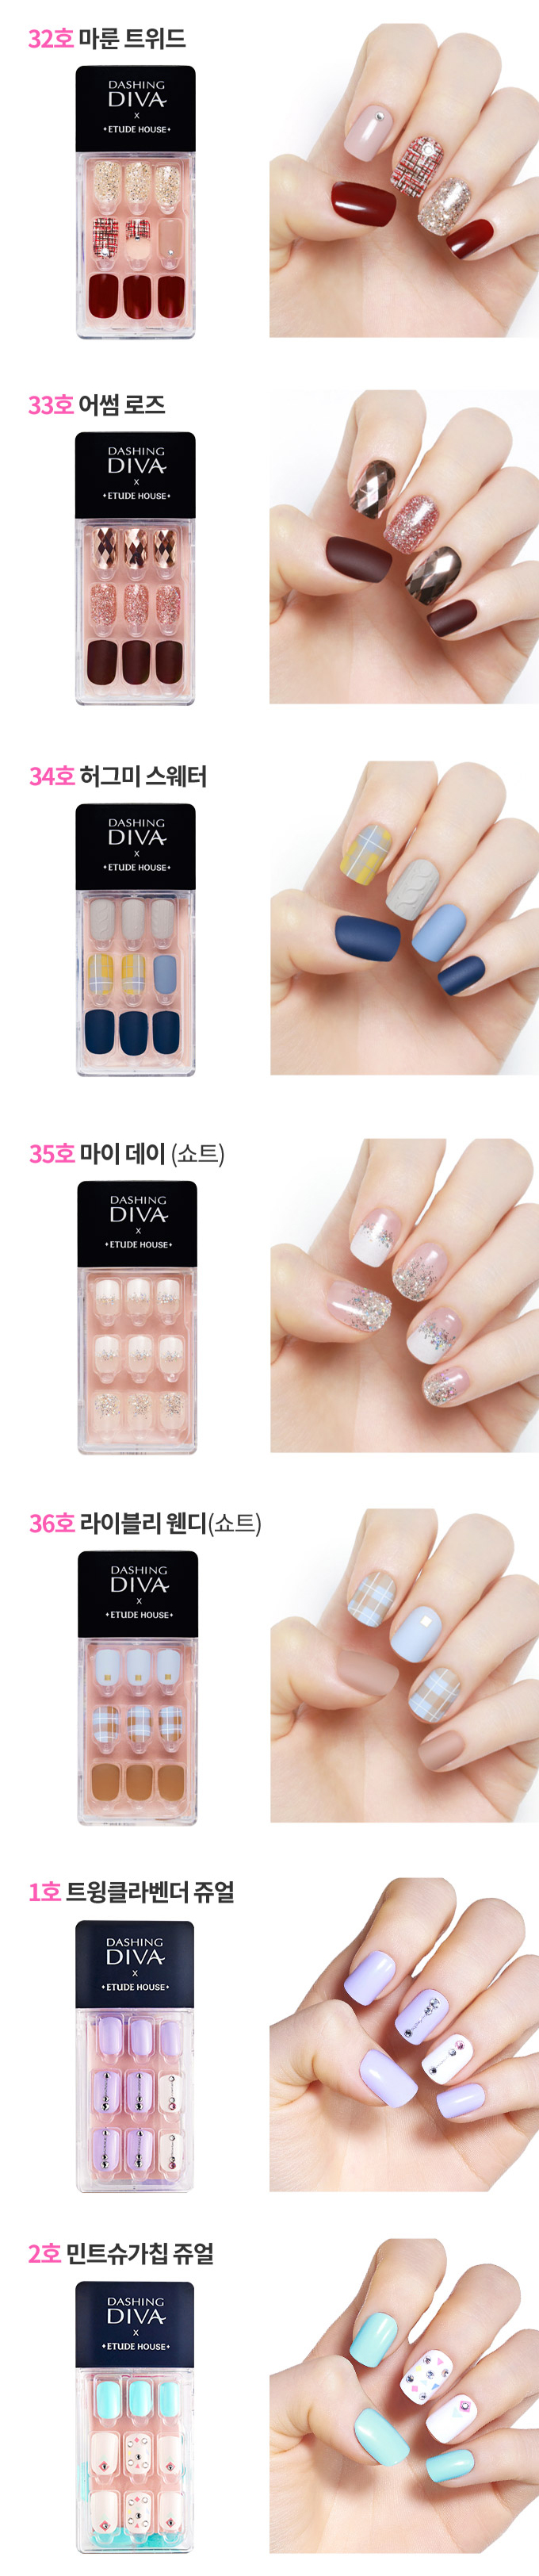 Etude House] Magic Press (20Kinds)